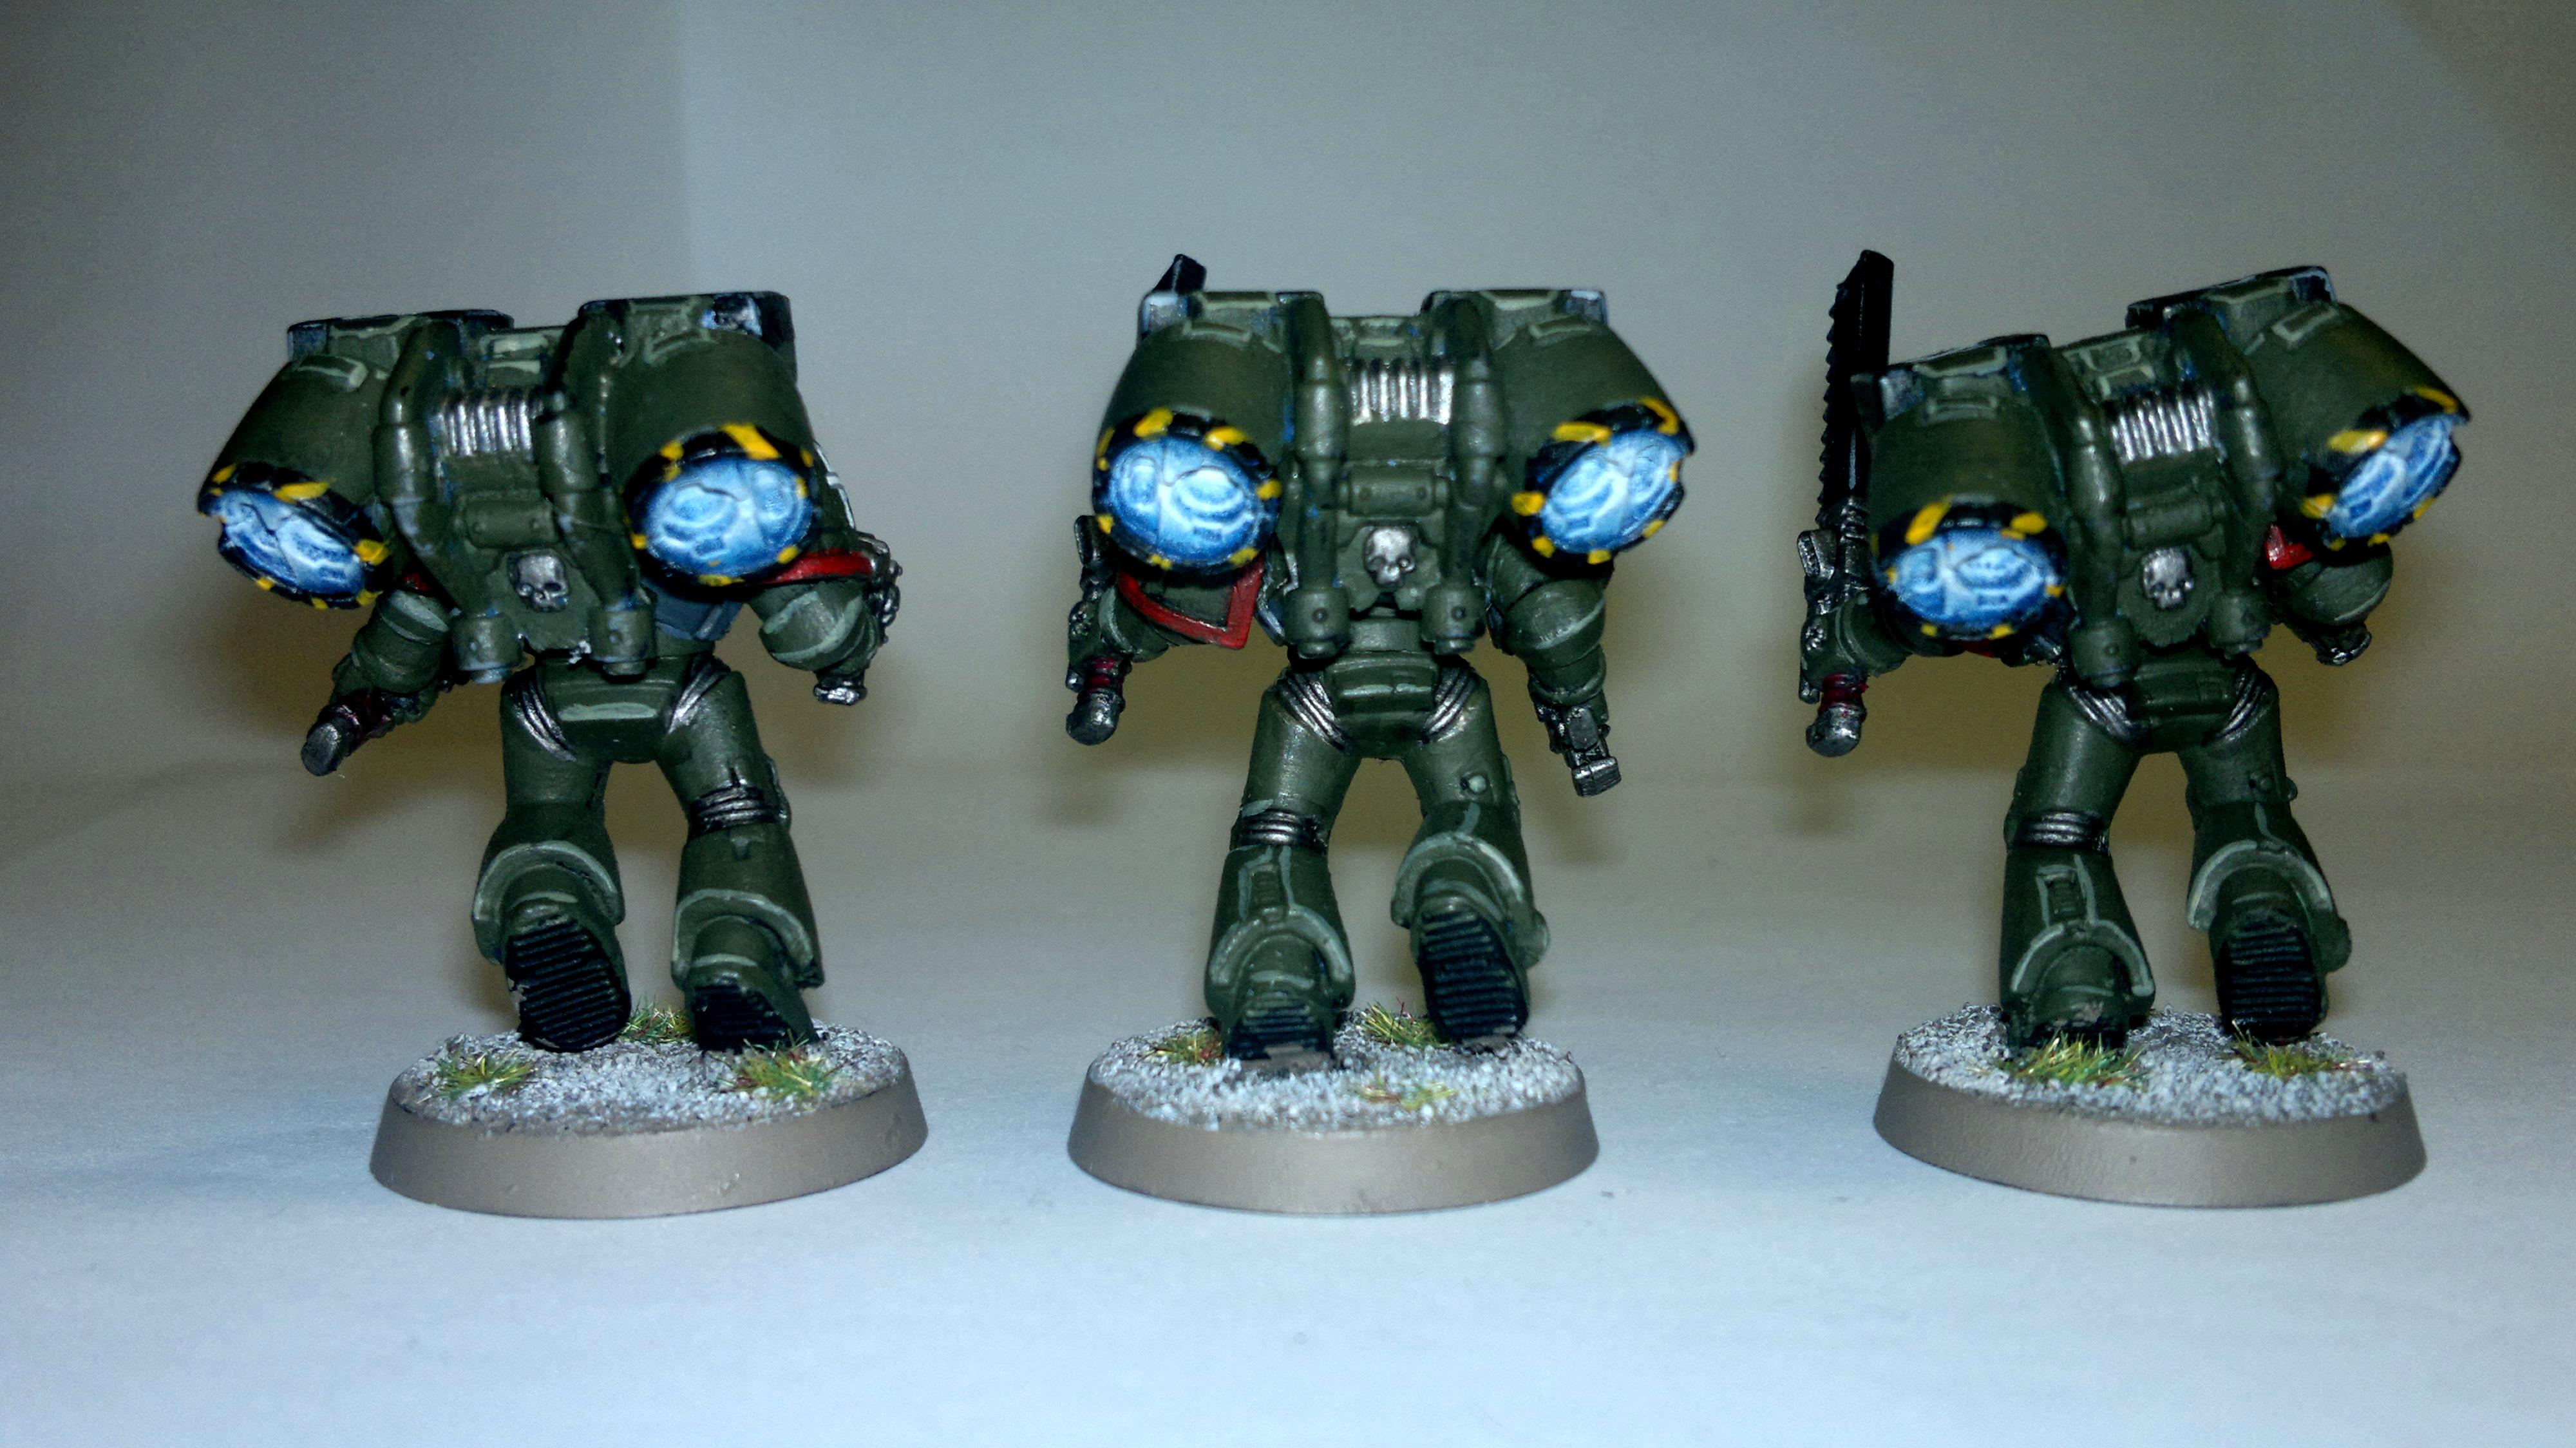 Assualt Squad, Imperial, Jump Pack, Object Source Lighting, Space Marines, Warhammer 40,000